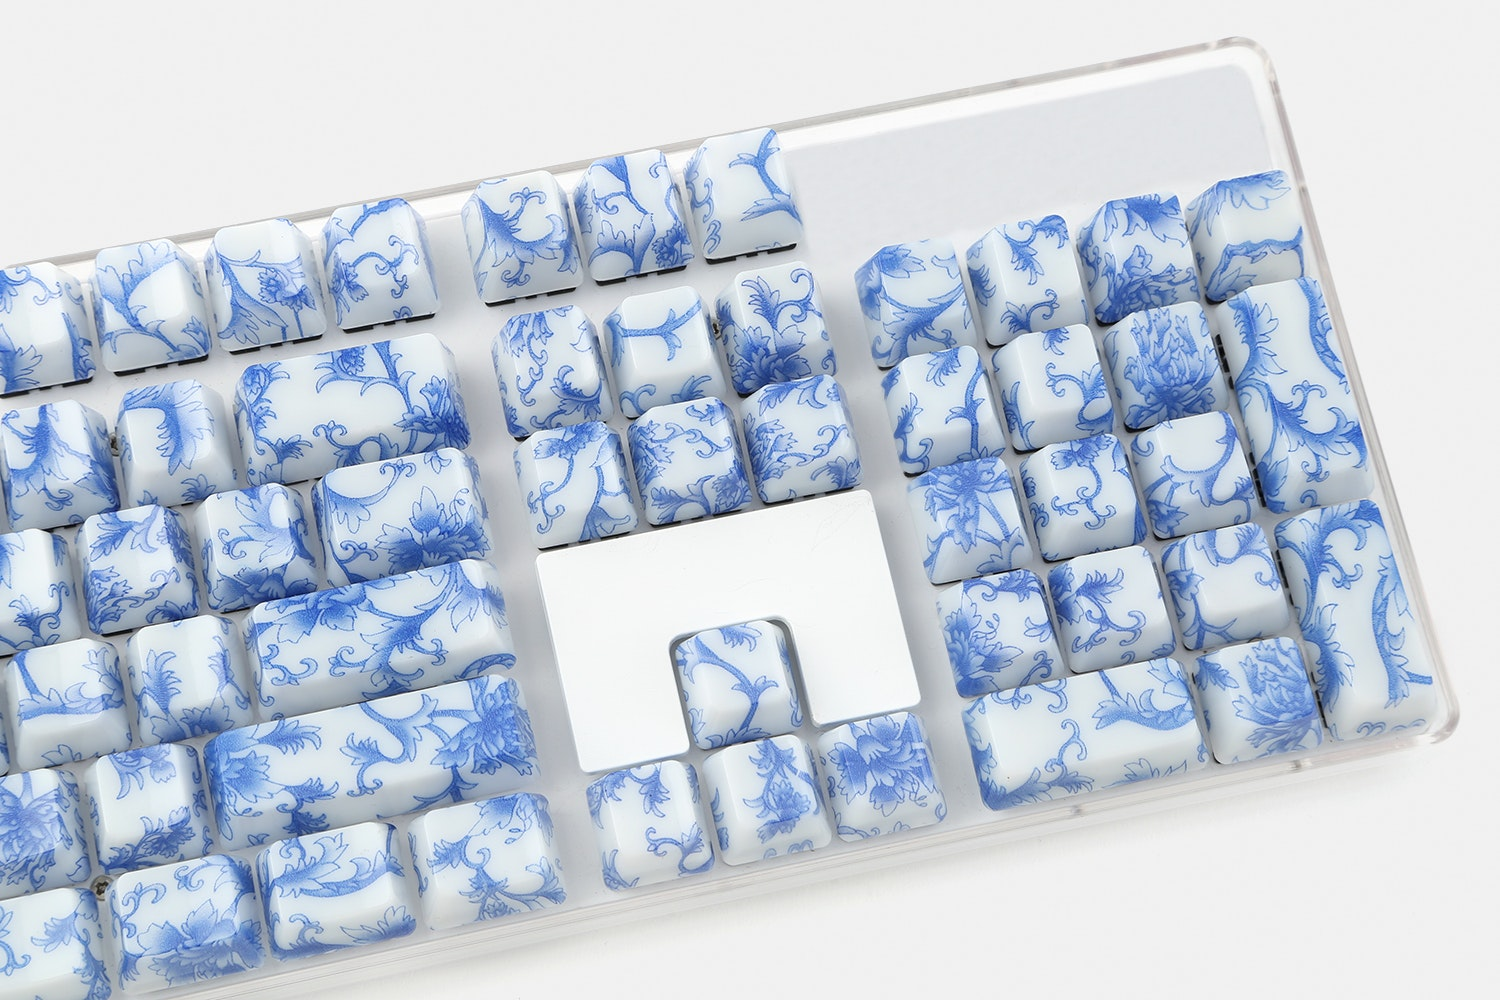 Imperial Porcelain ABS Keycap Set